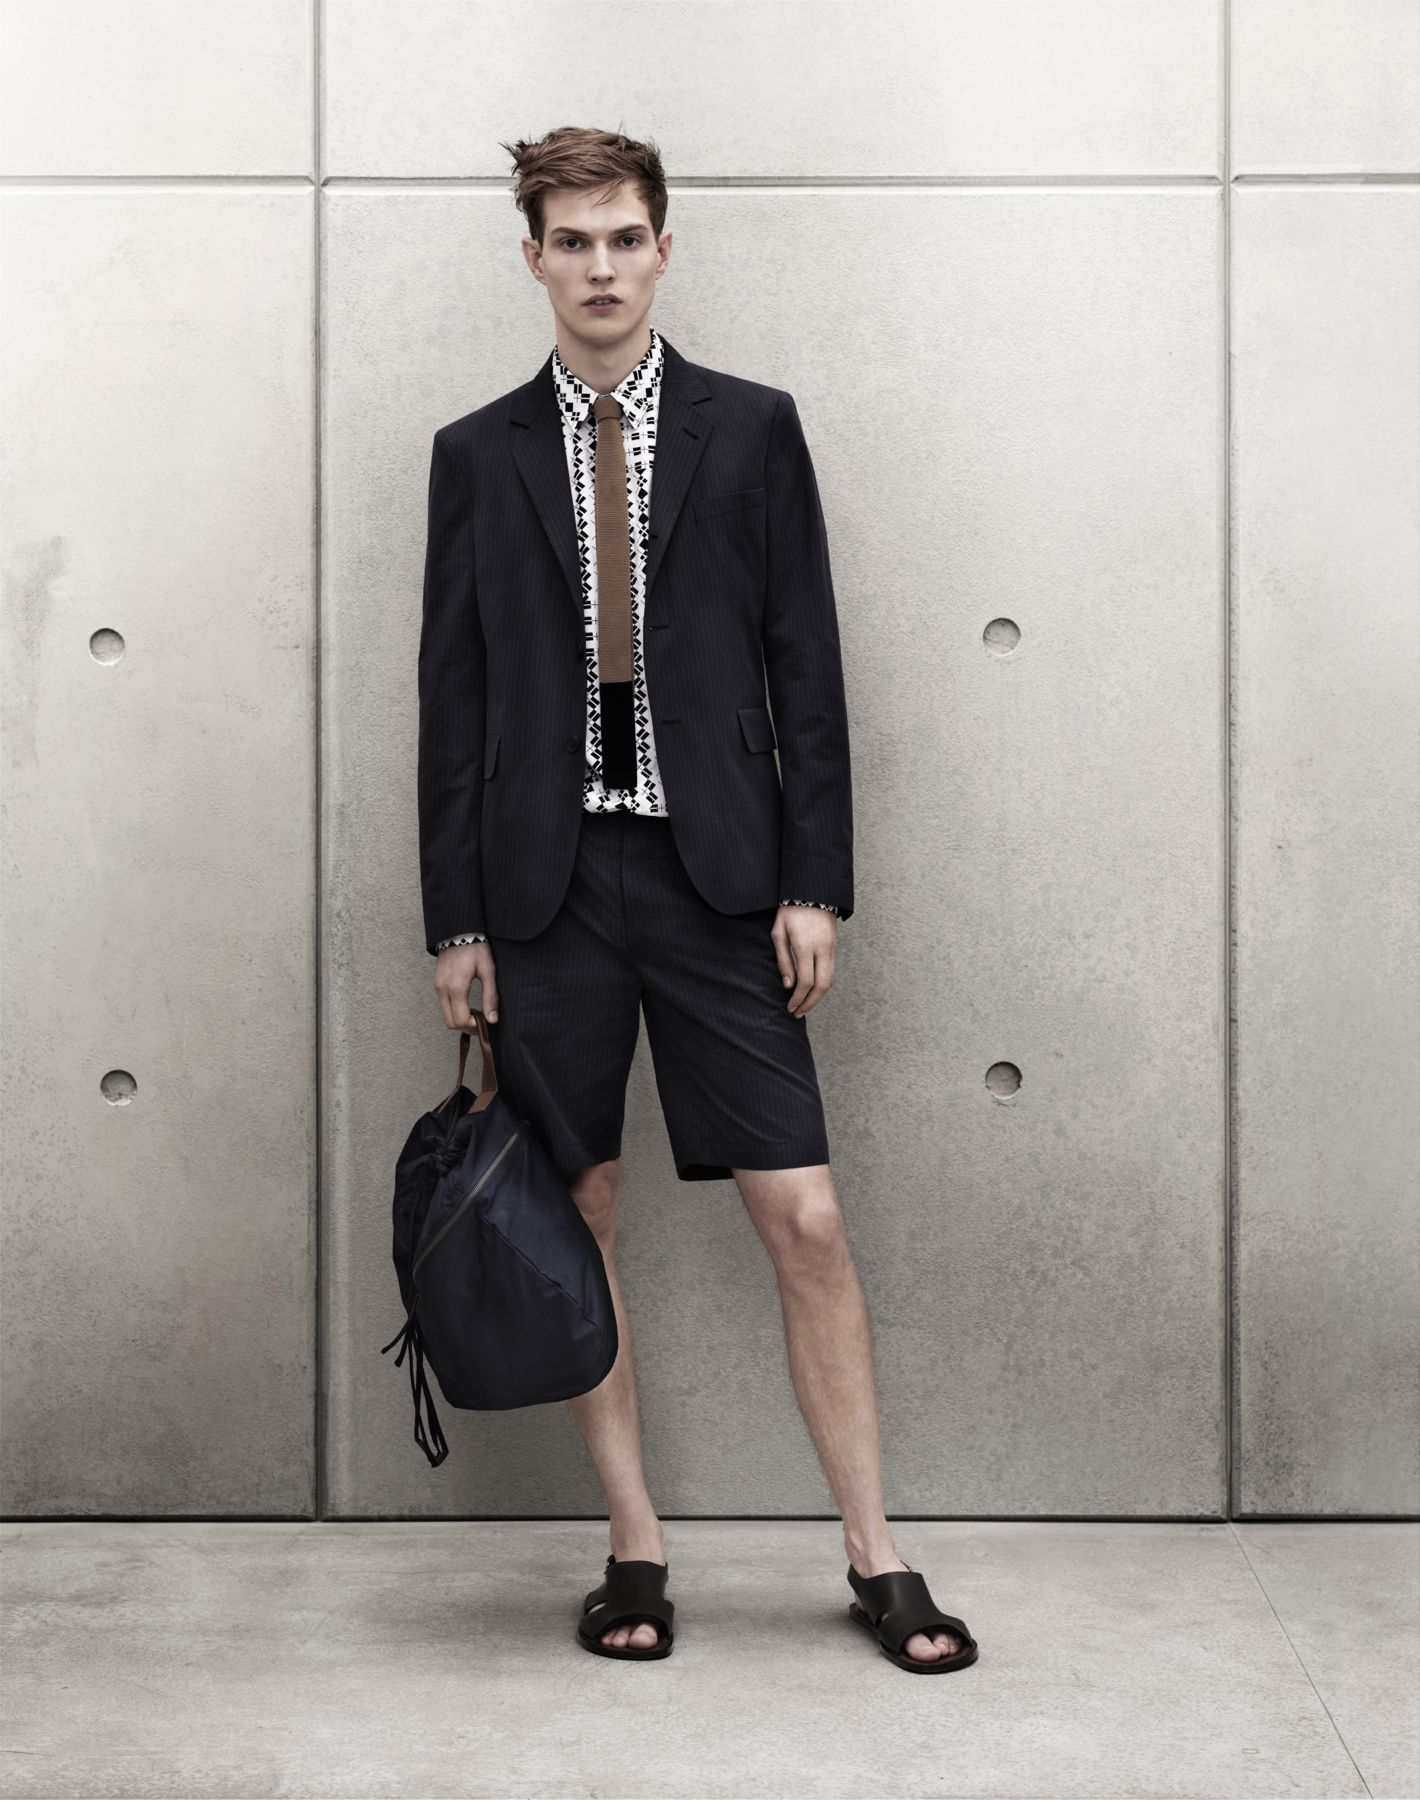 Marni for H&M Men's Collection